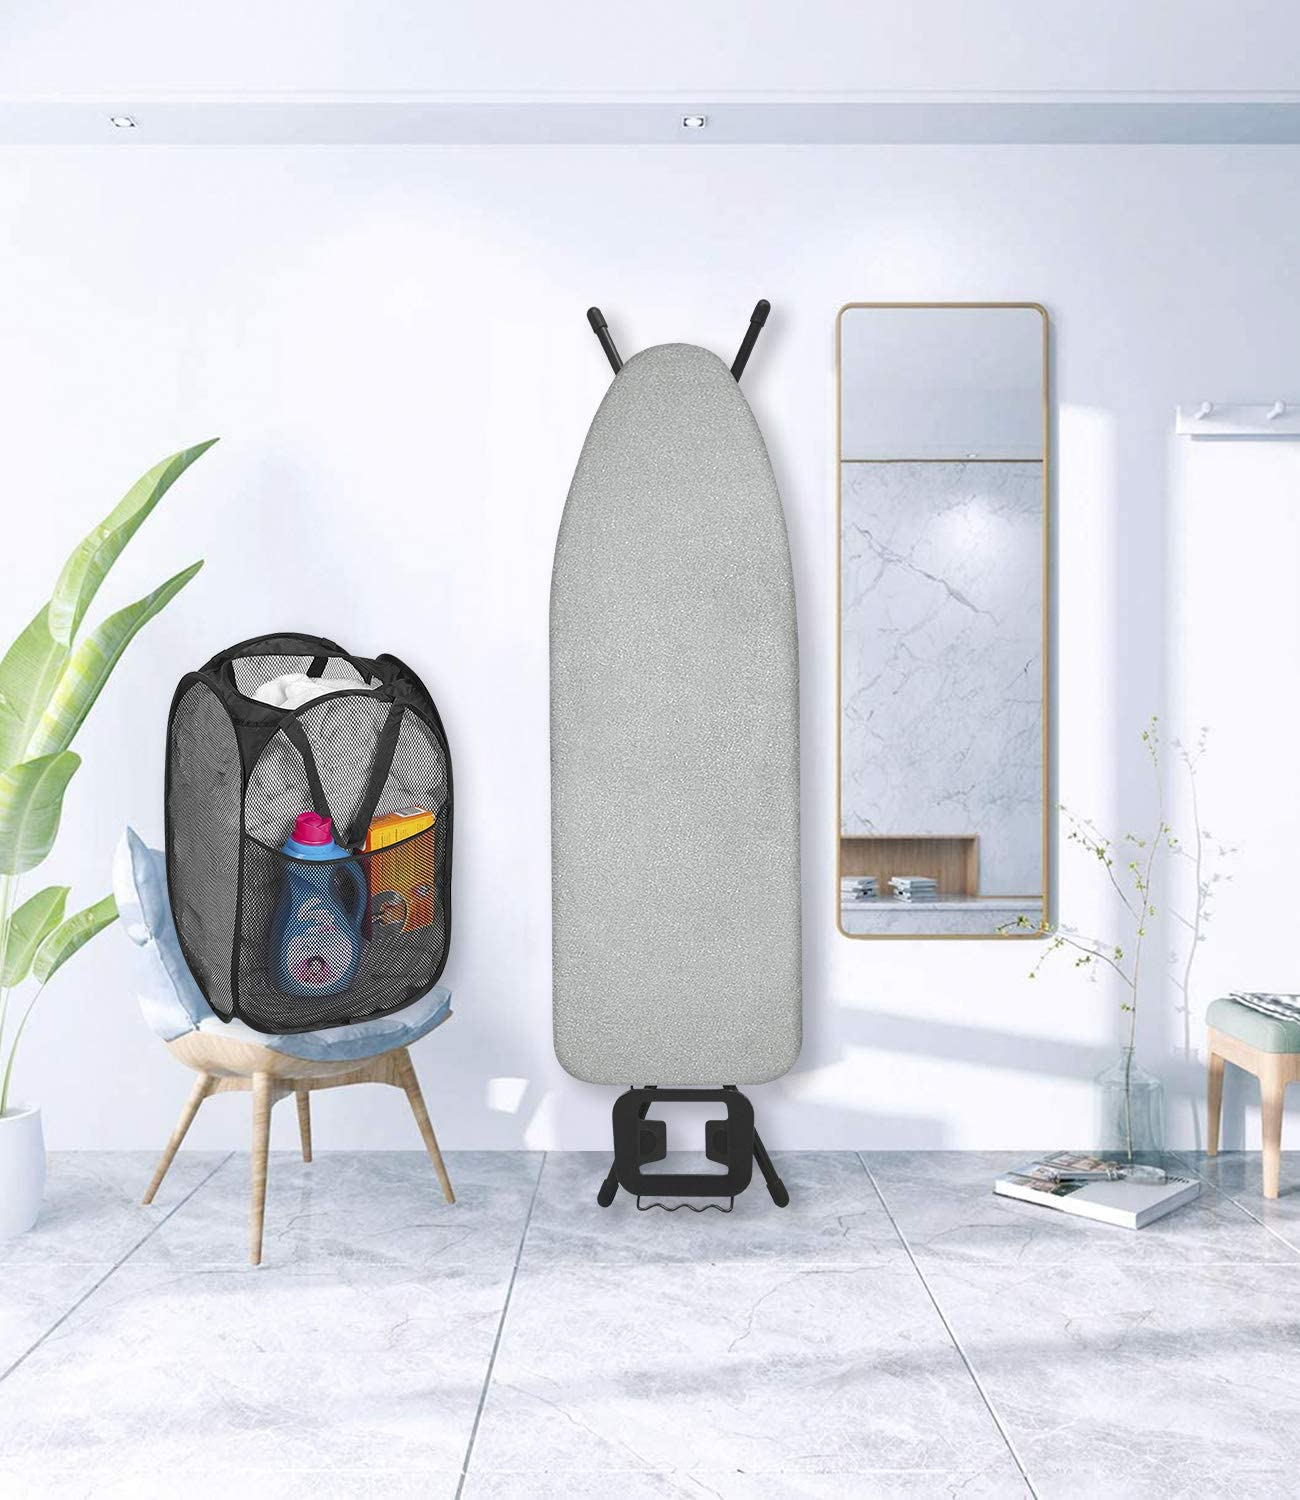 Seiritex Ironing Board Cover for Extra Wide with Silicone Coating Scorch and Stain Resistant Elasticized Edges Ironing Board Covers 18x49 1 Large Protective Scorch Mesh Cloth 1 Pop-up Laundry Basket